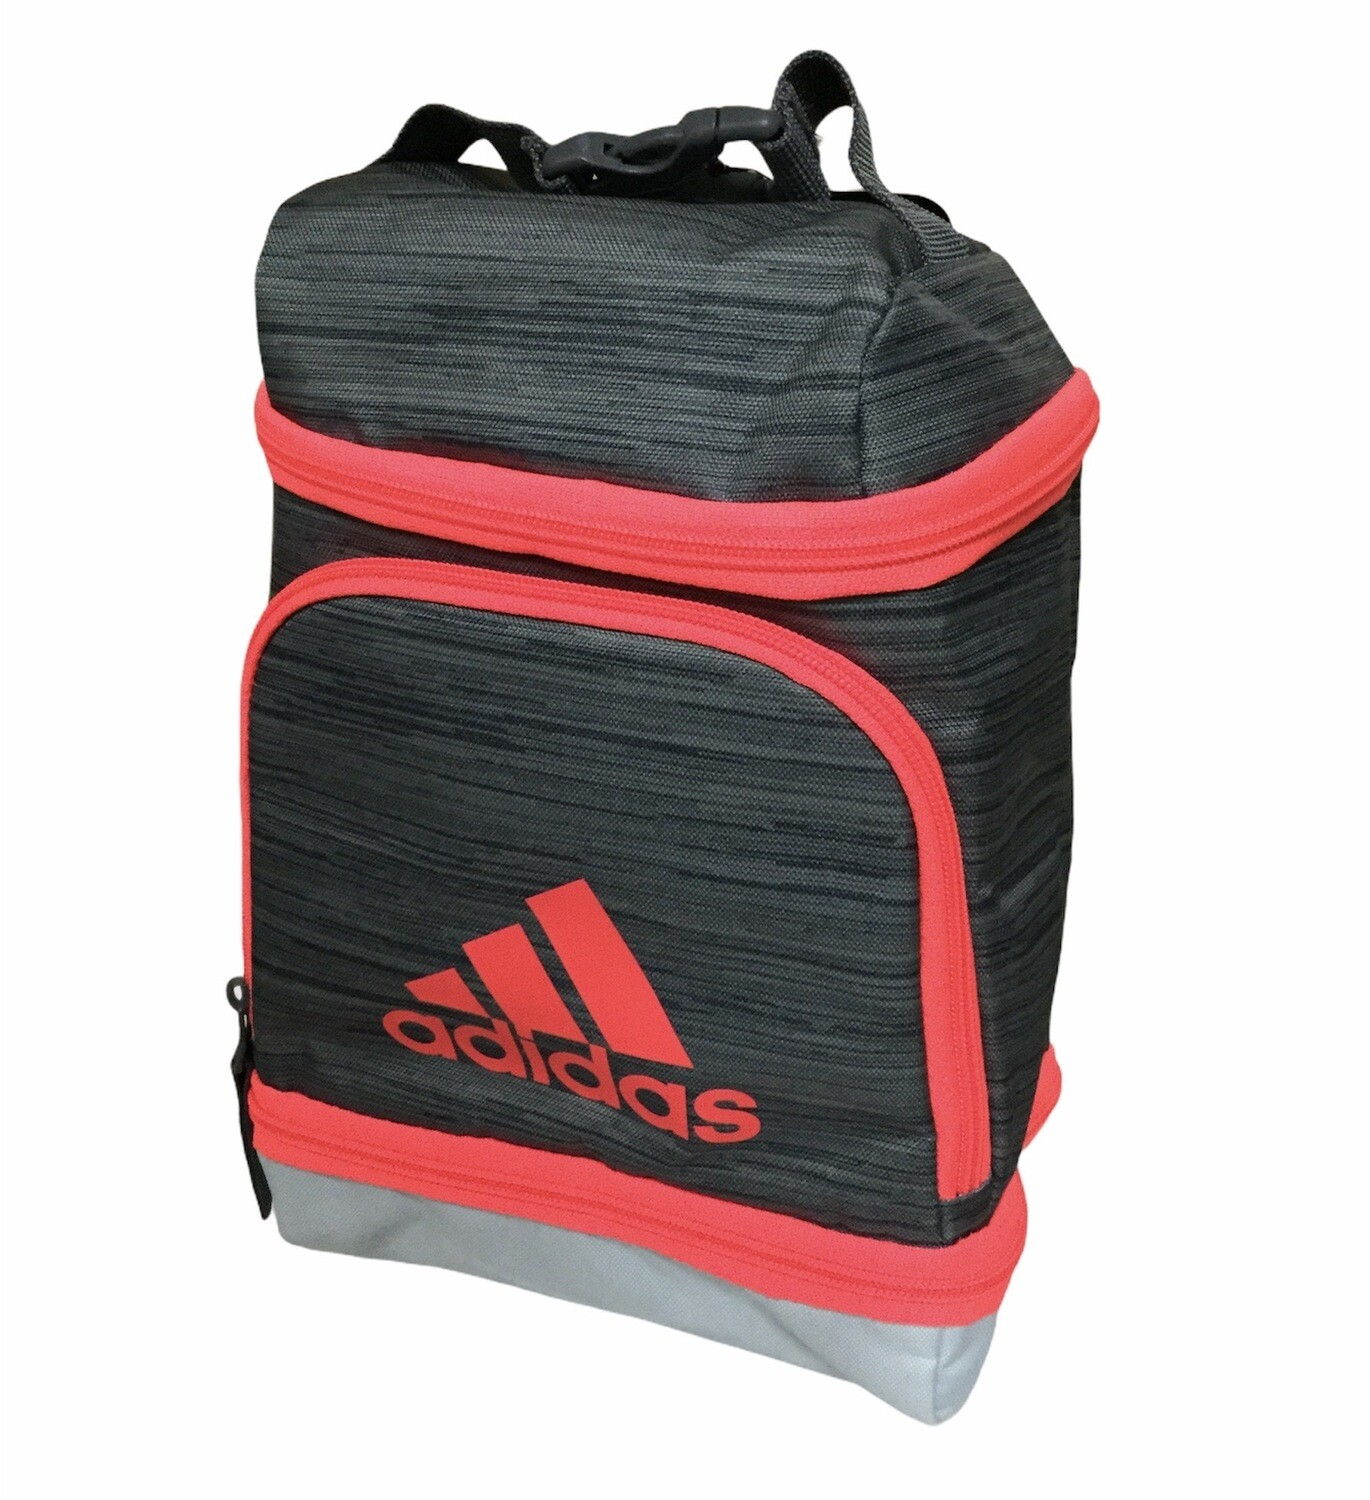 New ADIDAS Gray & Signal Pink Insulated Excel Lunch Bag